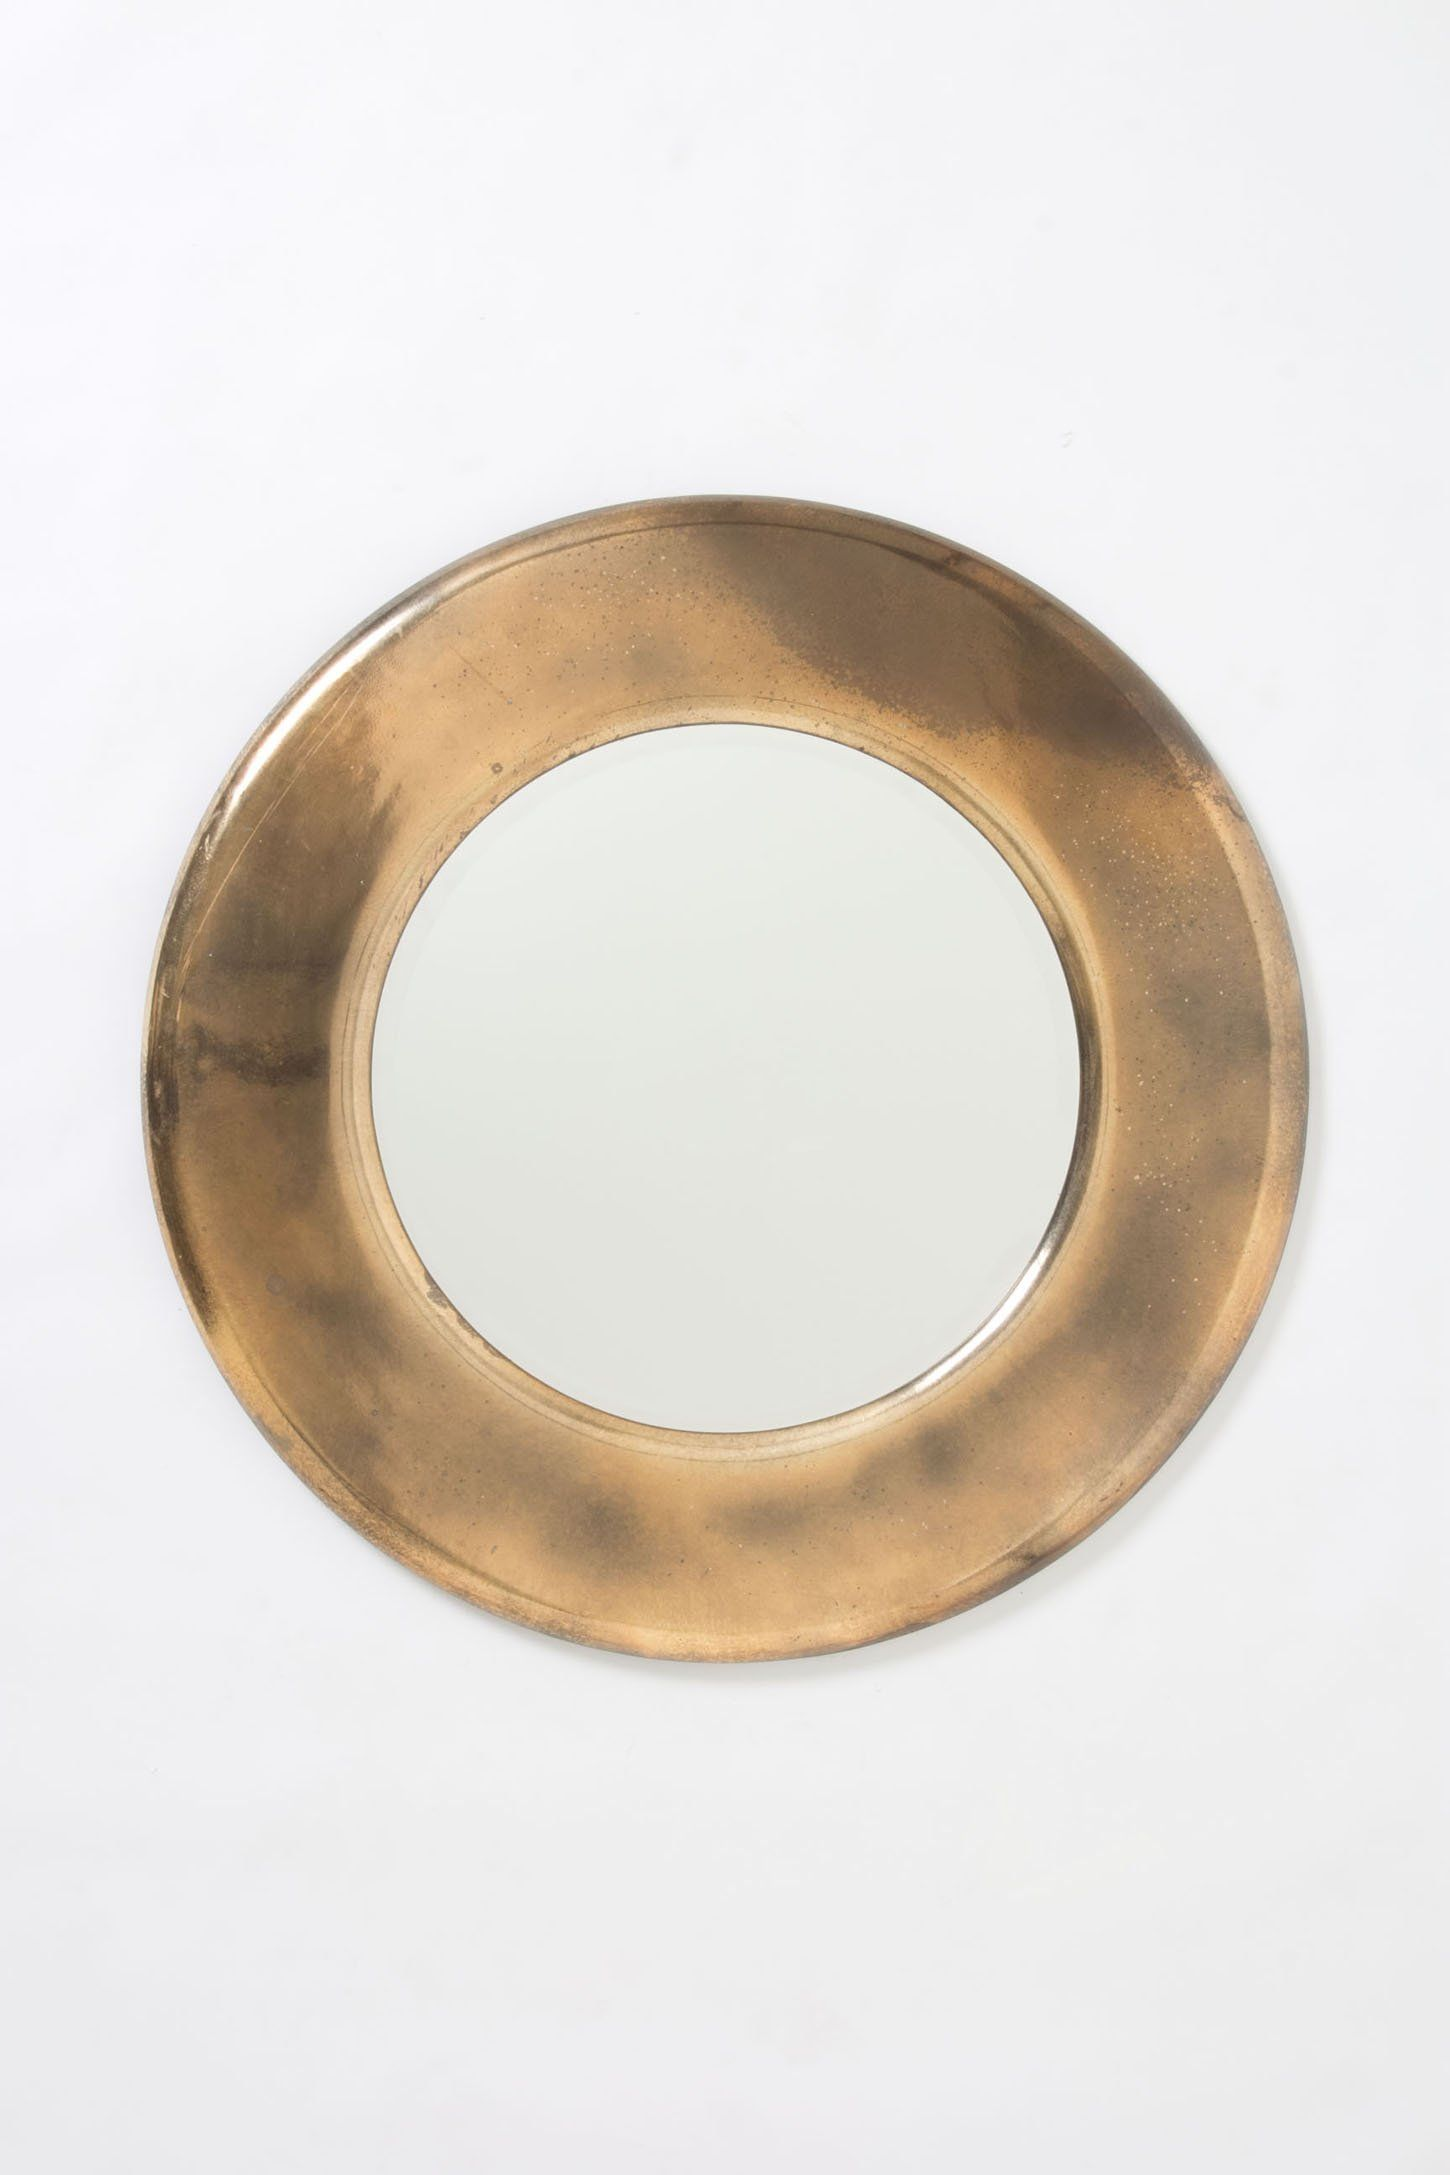 Antiqued Round Mirror Messing